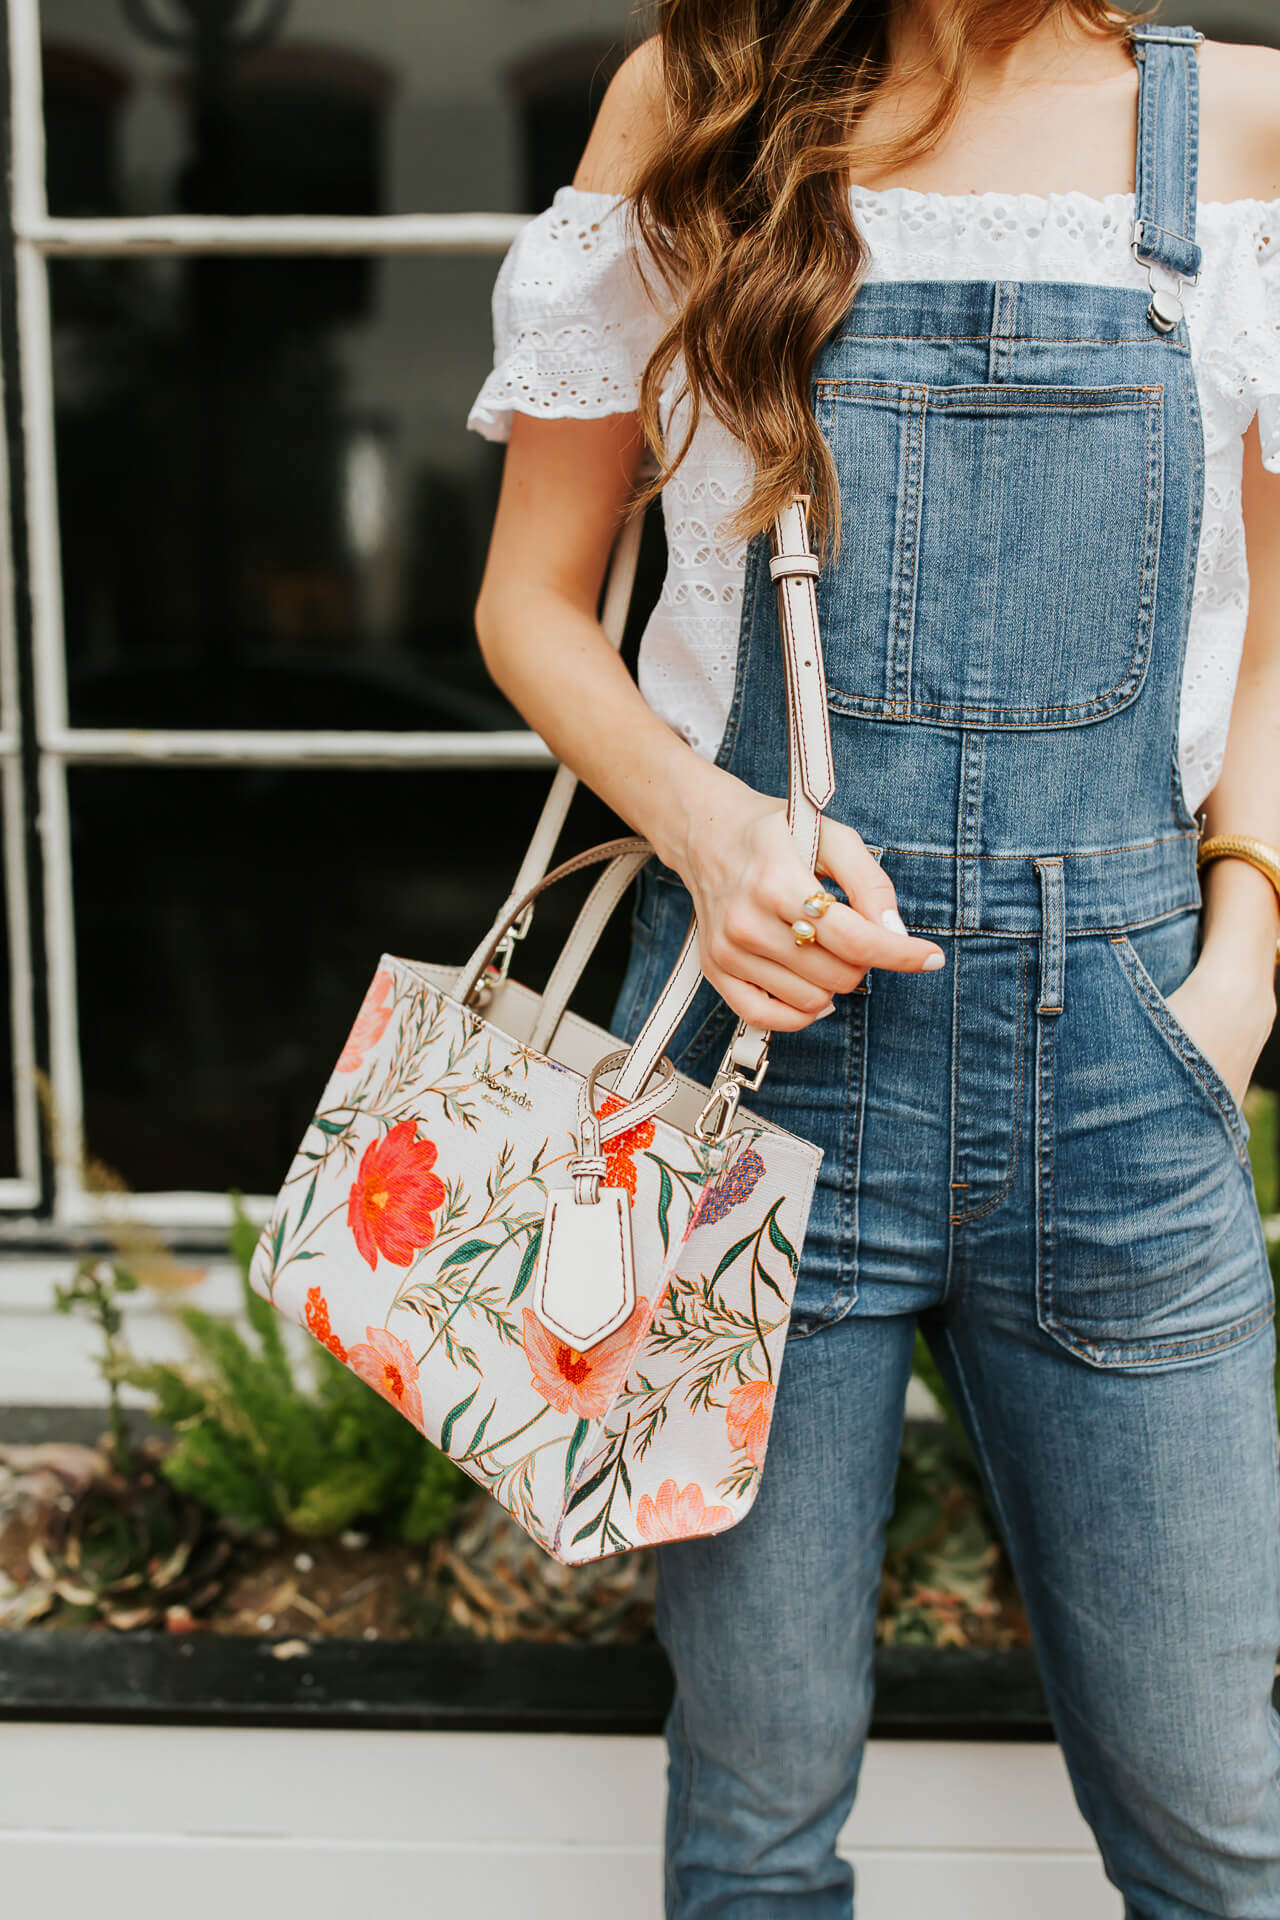 I love Kate Spade handbags! They are always such good quality and come in the prettiest prints and colors!   M Loves M @marmar